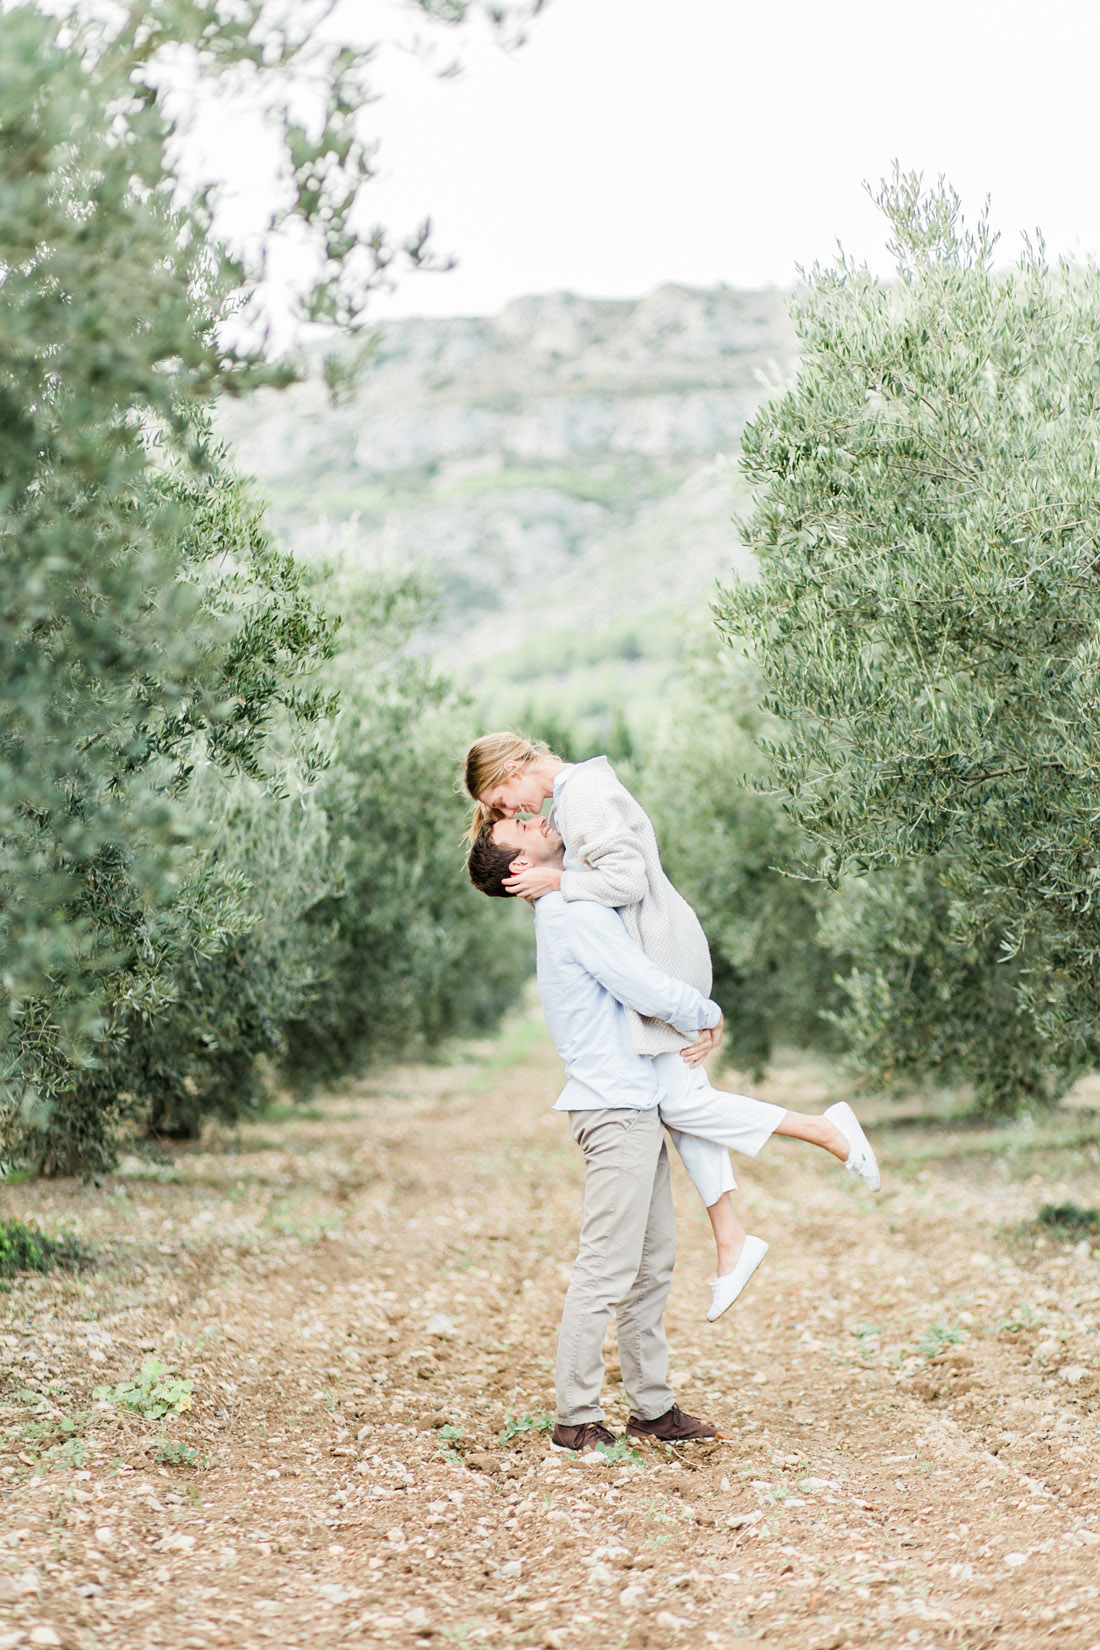 Fine Art wedding photographer photography Catalunya Spain Spanje Fotografo Espanha Catalonie Costa Brava fotografia l'Estartit Torroella de Montgri bruiloft bruidsfotograaf fotograaf strand olijfbomen olive trees olijfgaard boomgaard fotoshoot loveshoot engagement shoot esession engaged verloofd trouwen in Spanje op het strand zonsondergang beach wedding shoot photo shoot na praia Nederlandse fotograaf in Spanje